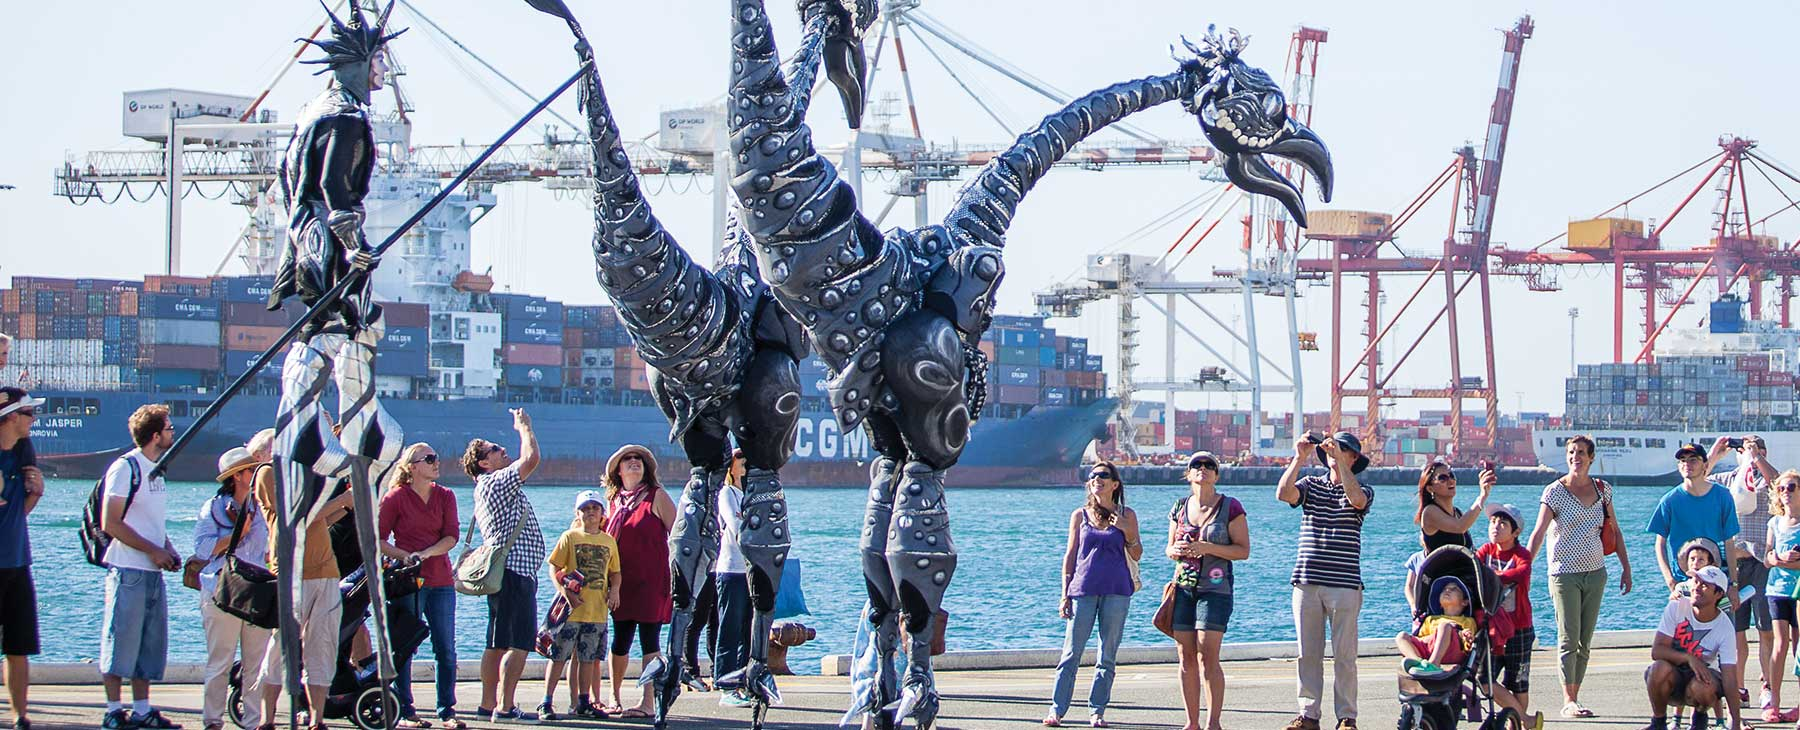 Giant puppets preform on Fremantle docks